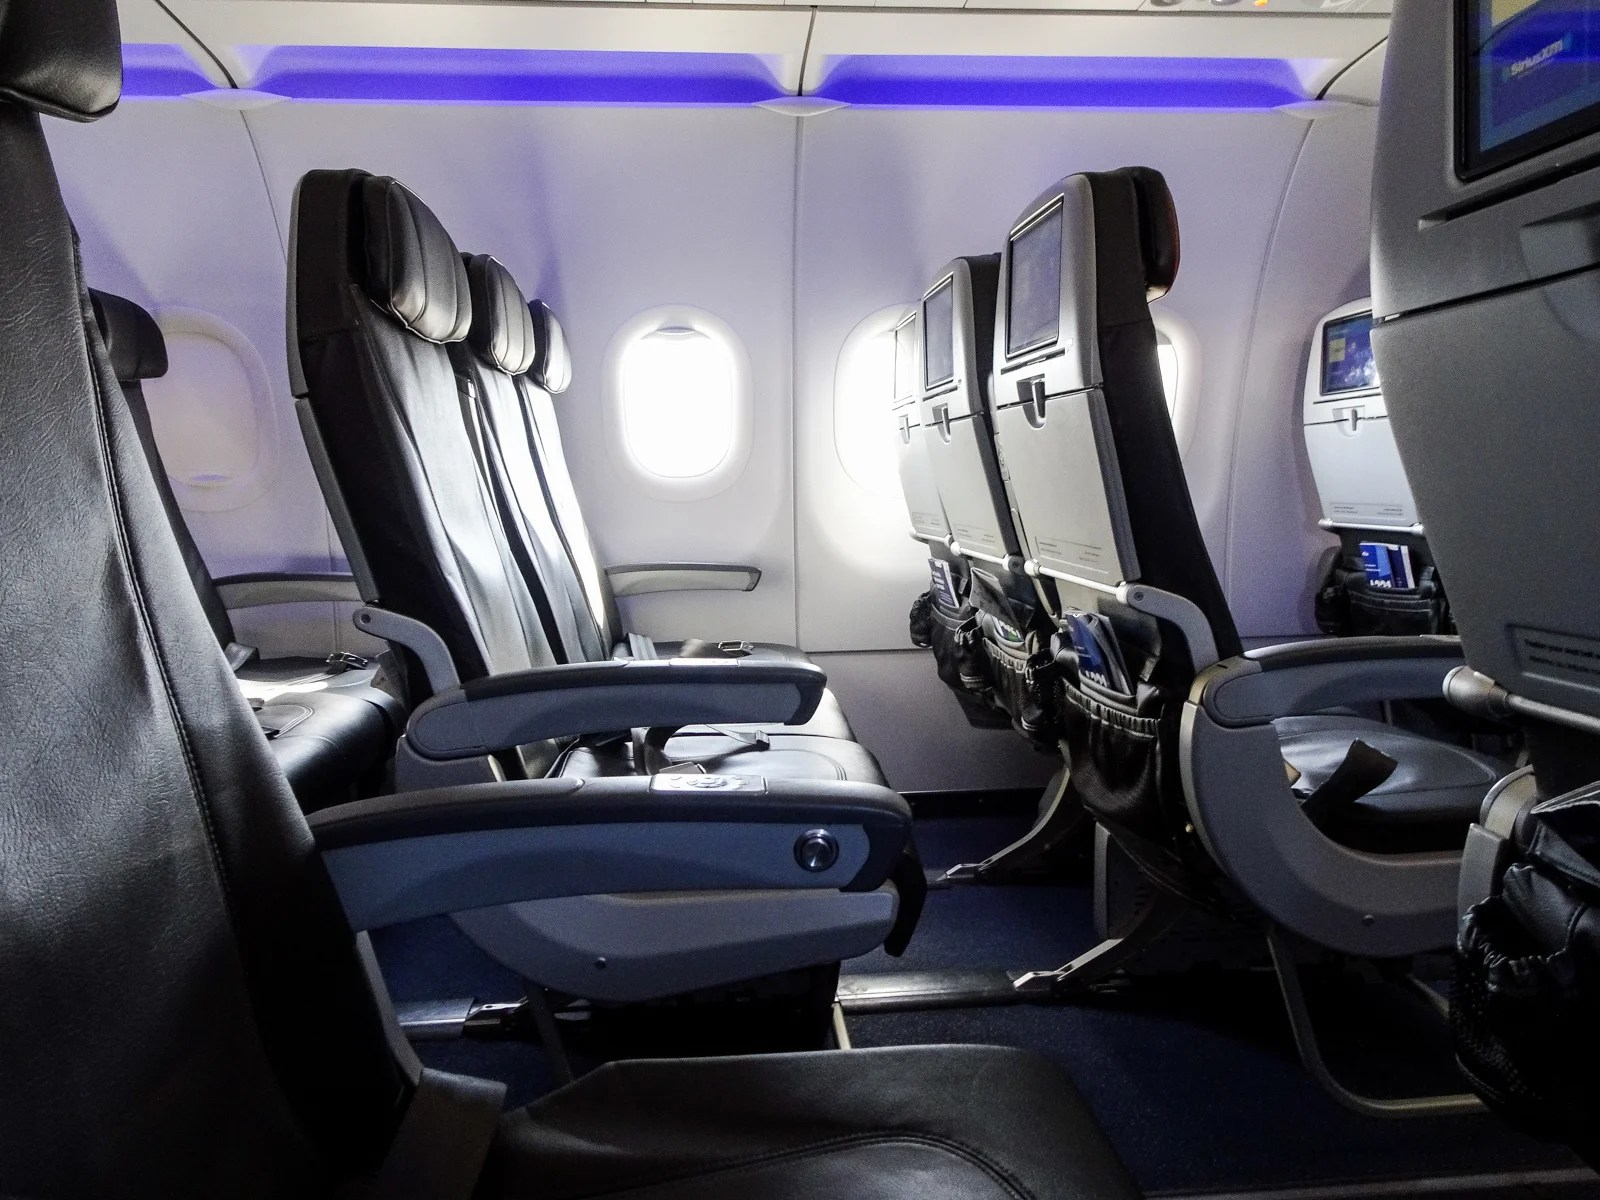 JetBlue's Bringing Back Its All You Can Jet Pass — With a Big Catch